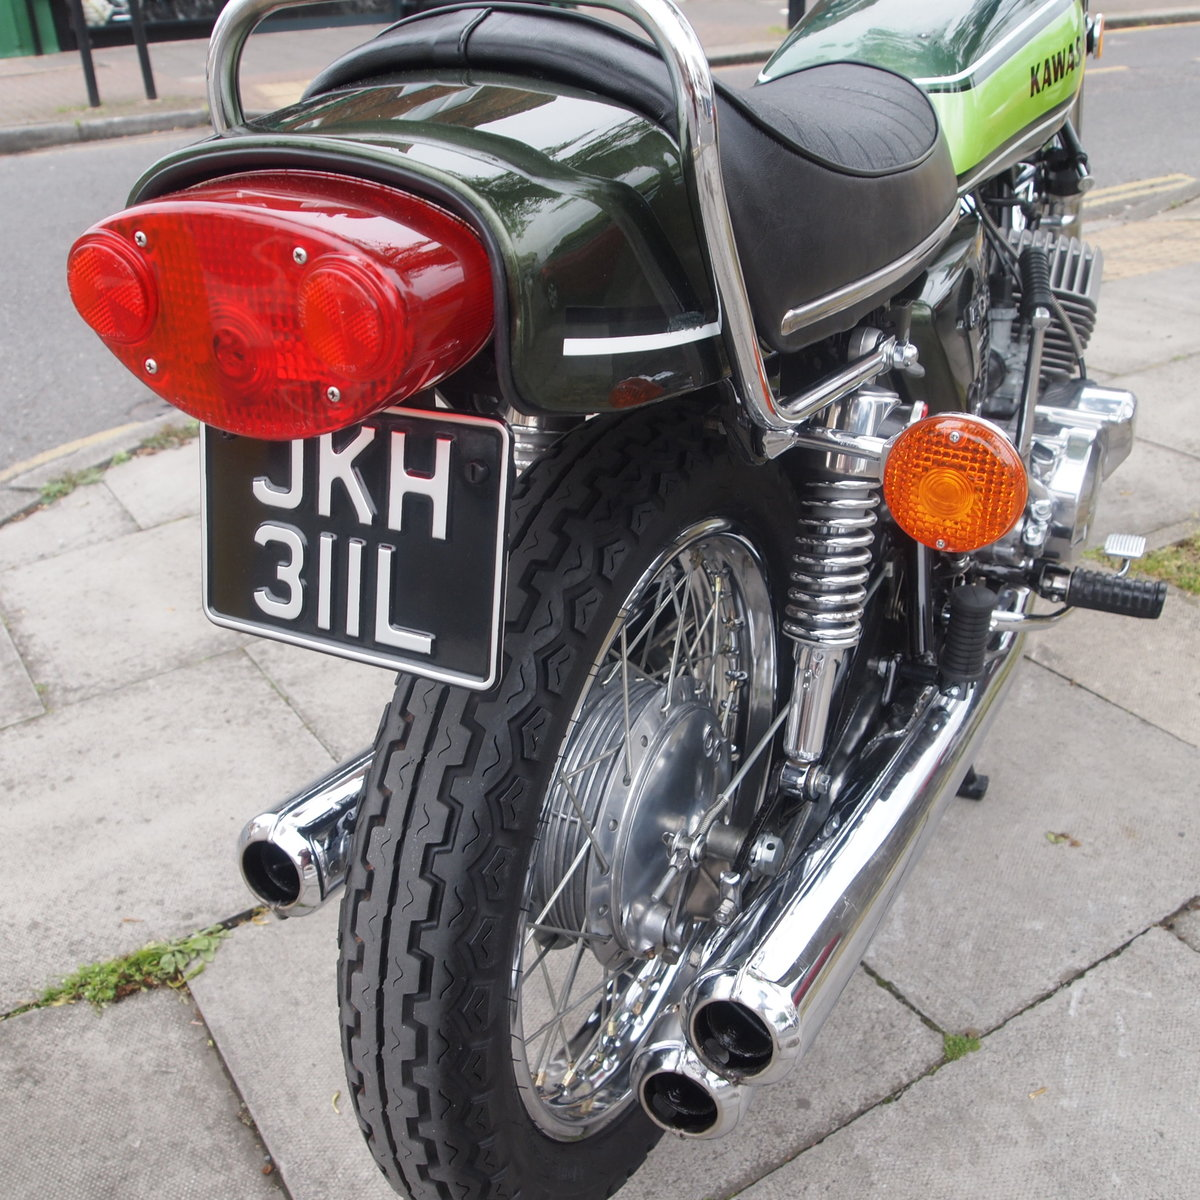 1973 Kawasaki H1D 500 Triple, RESERVED FOR GEORGE. SOLD (picture 2 of 6)